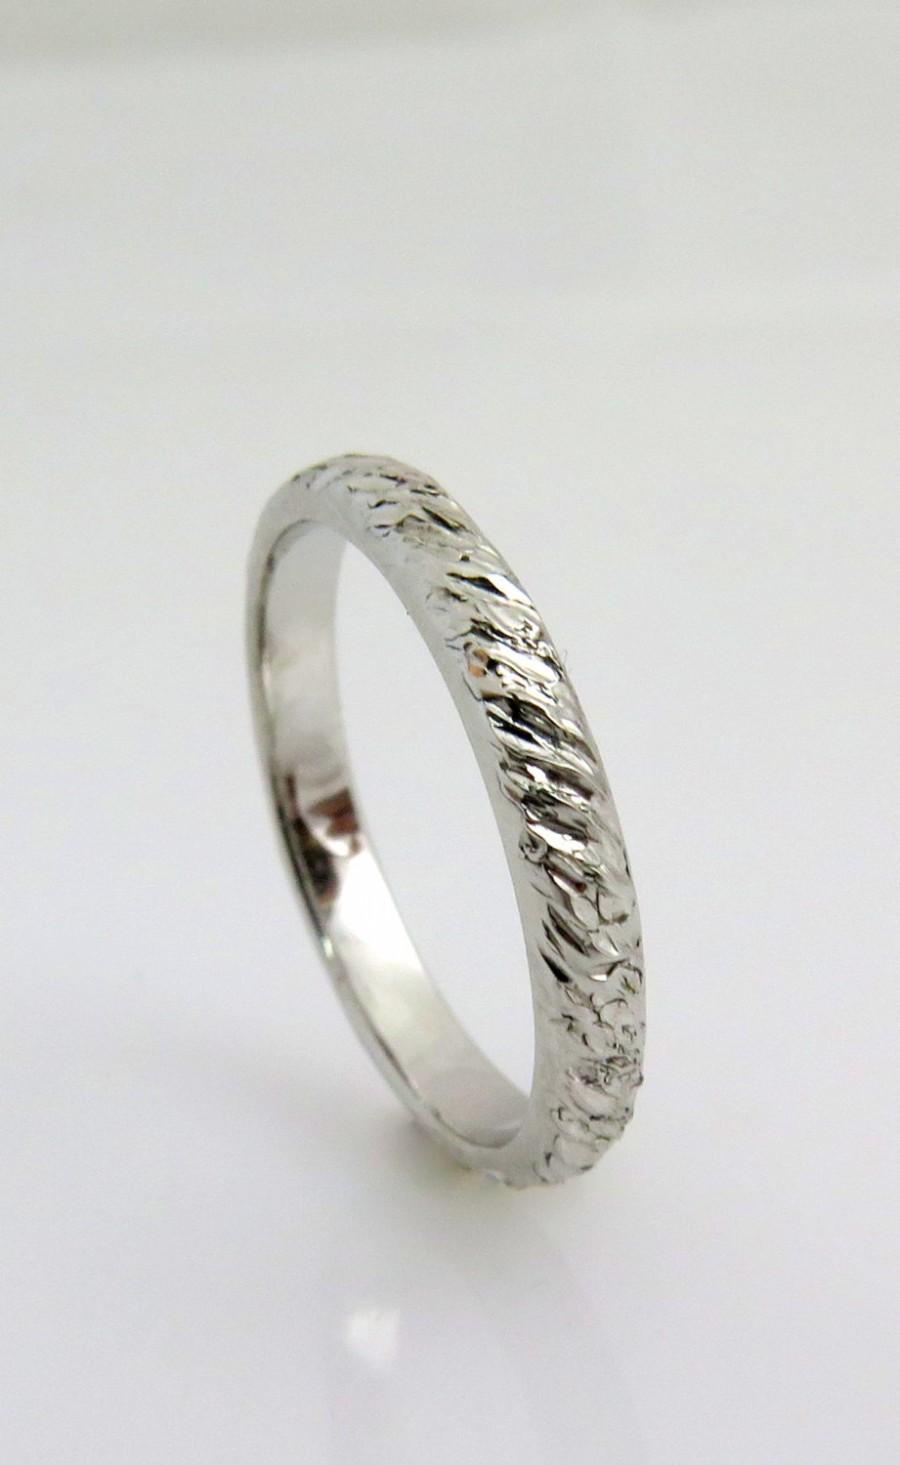 unique wide reticulated silver wedding band rustic wedding bands Unique Wide Reticulated Silver Wedding Band Handmade Rustic Wedding Band Artisan Commitment Band Contemporary Wearable Wedding Art